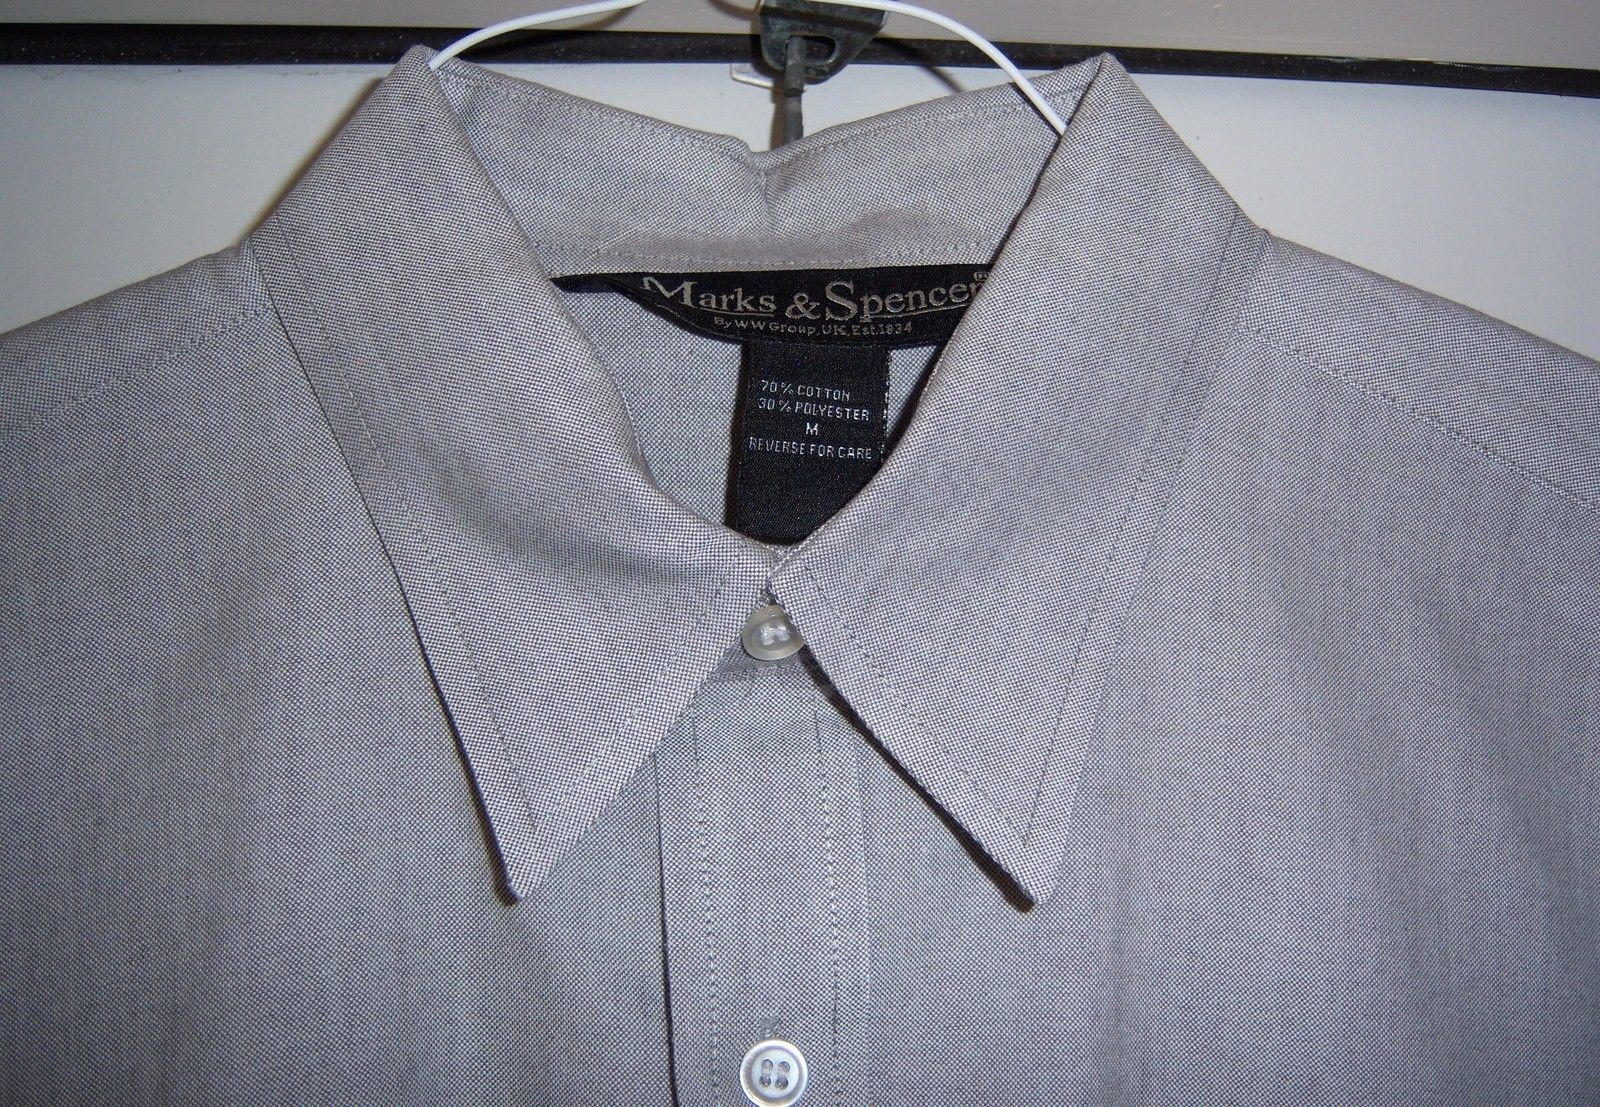 MARKS AND SPENCER Oxford Style Shirt Cotton blend L/S Gray Men's M image 3